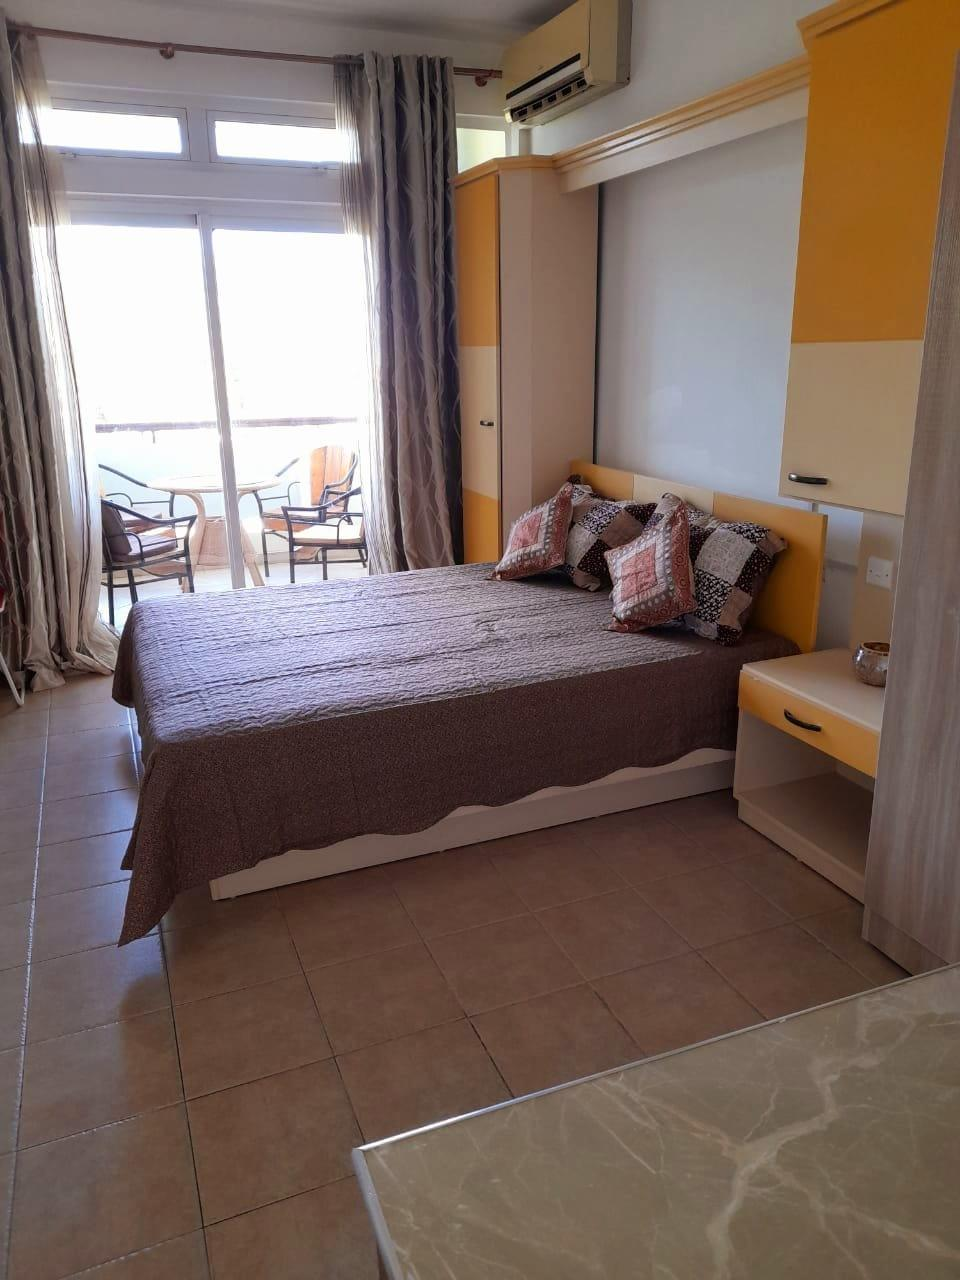 FOR RENT – Furnished and equipped studio of 30 m2 located on the 1st floor (without elevator) near all amenities in Flic en Flac.